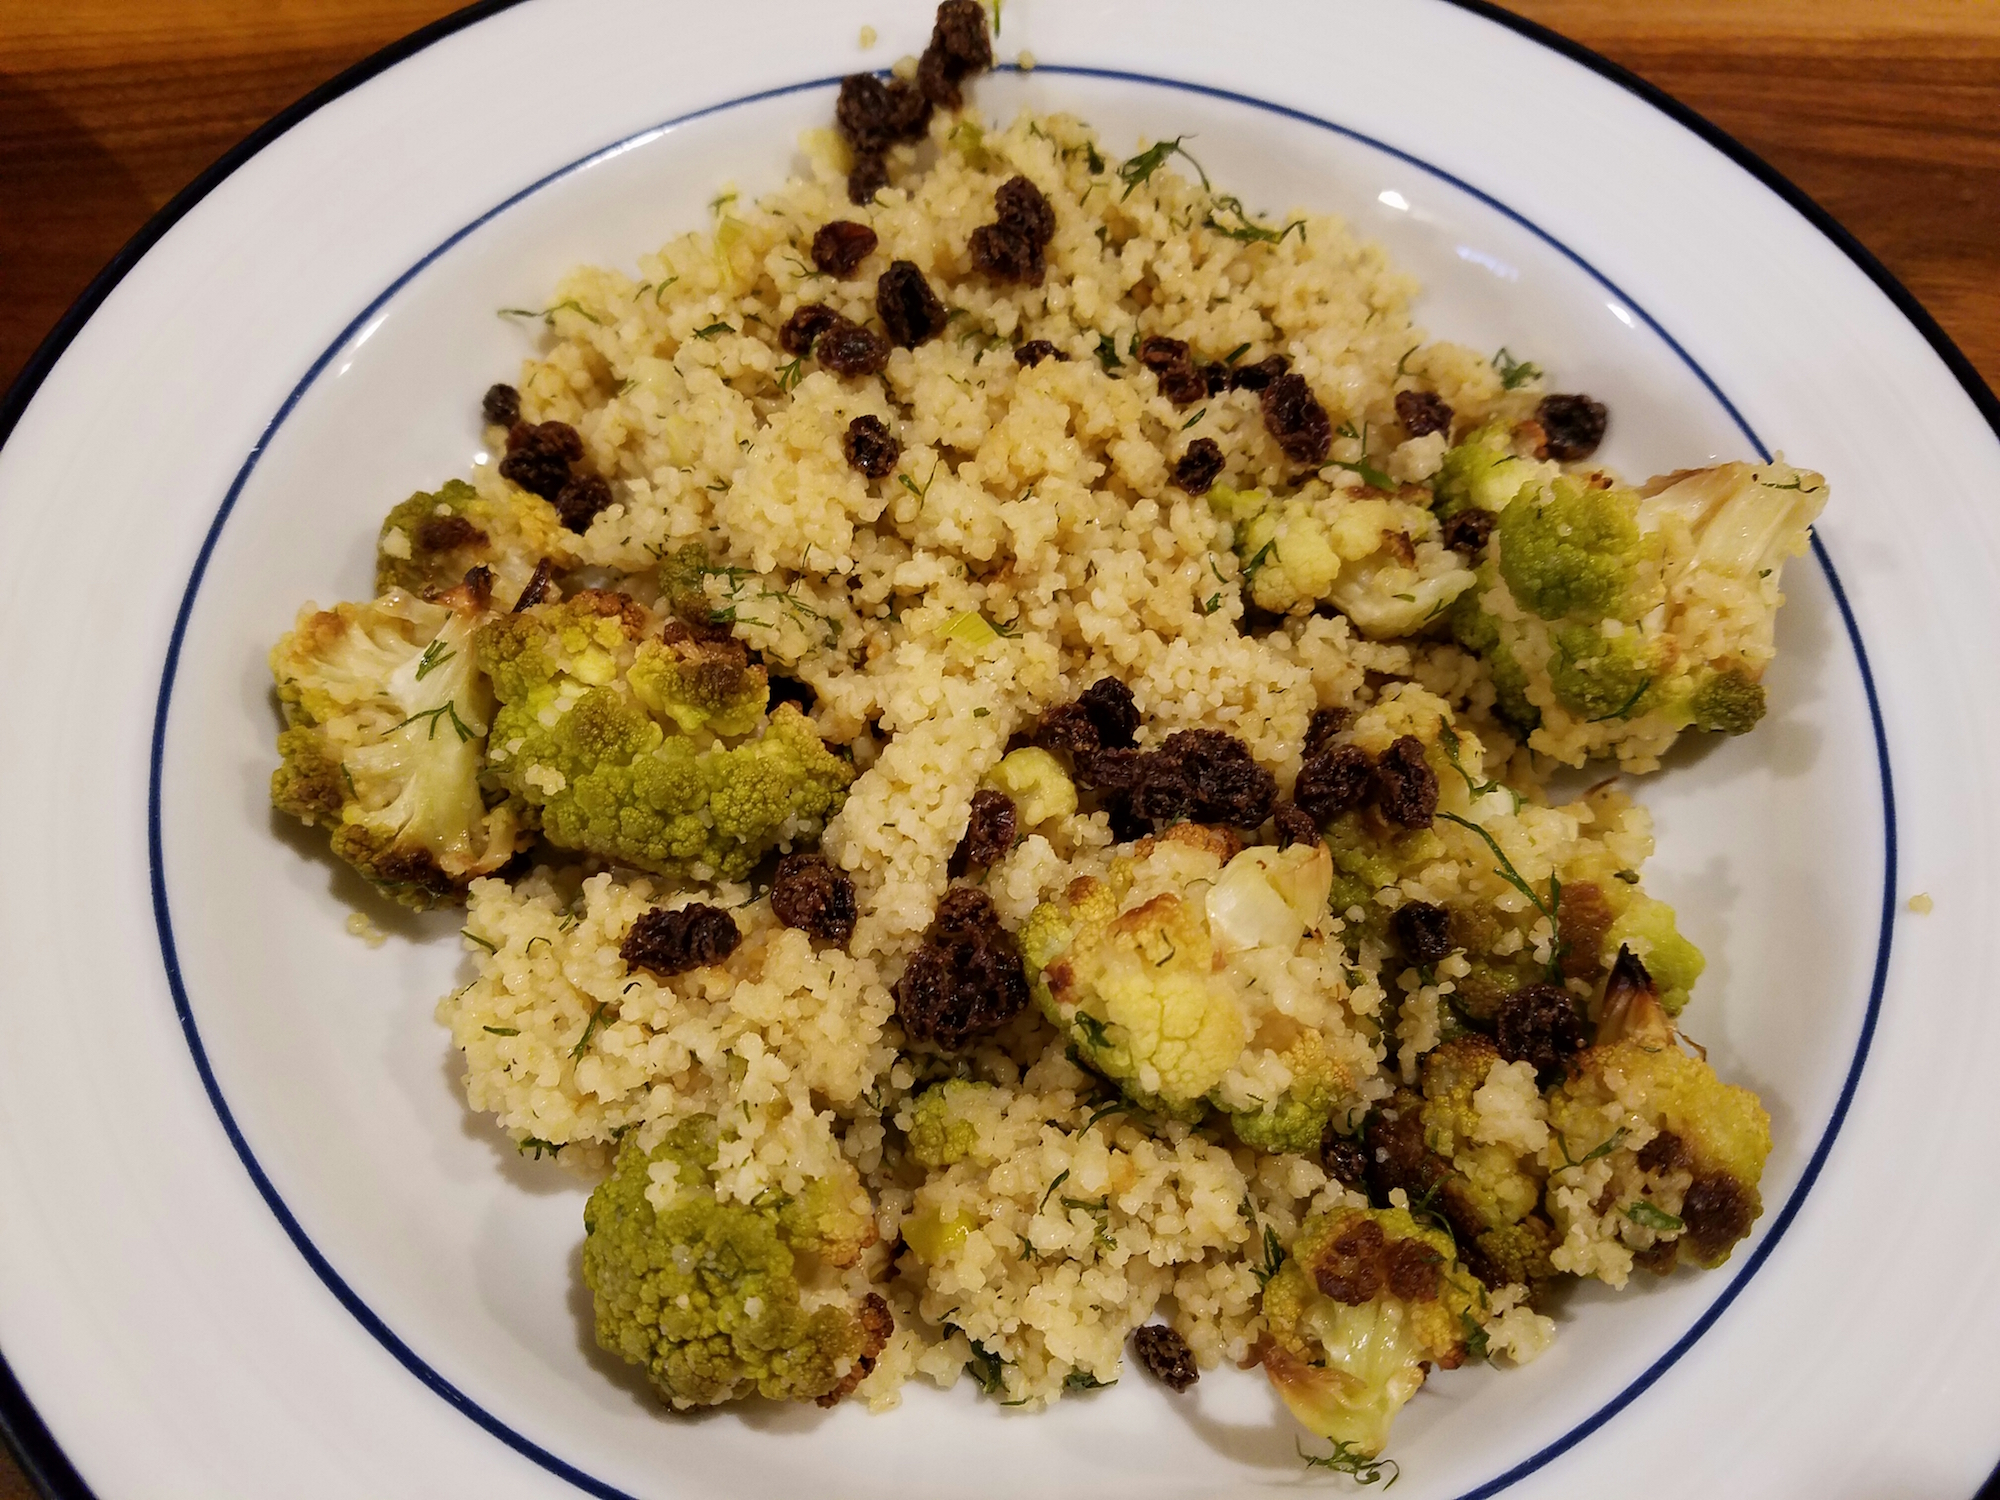 Couscous with Roasted Brocoflower